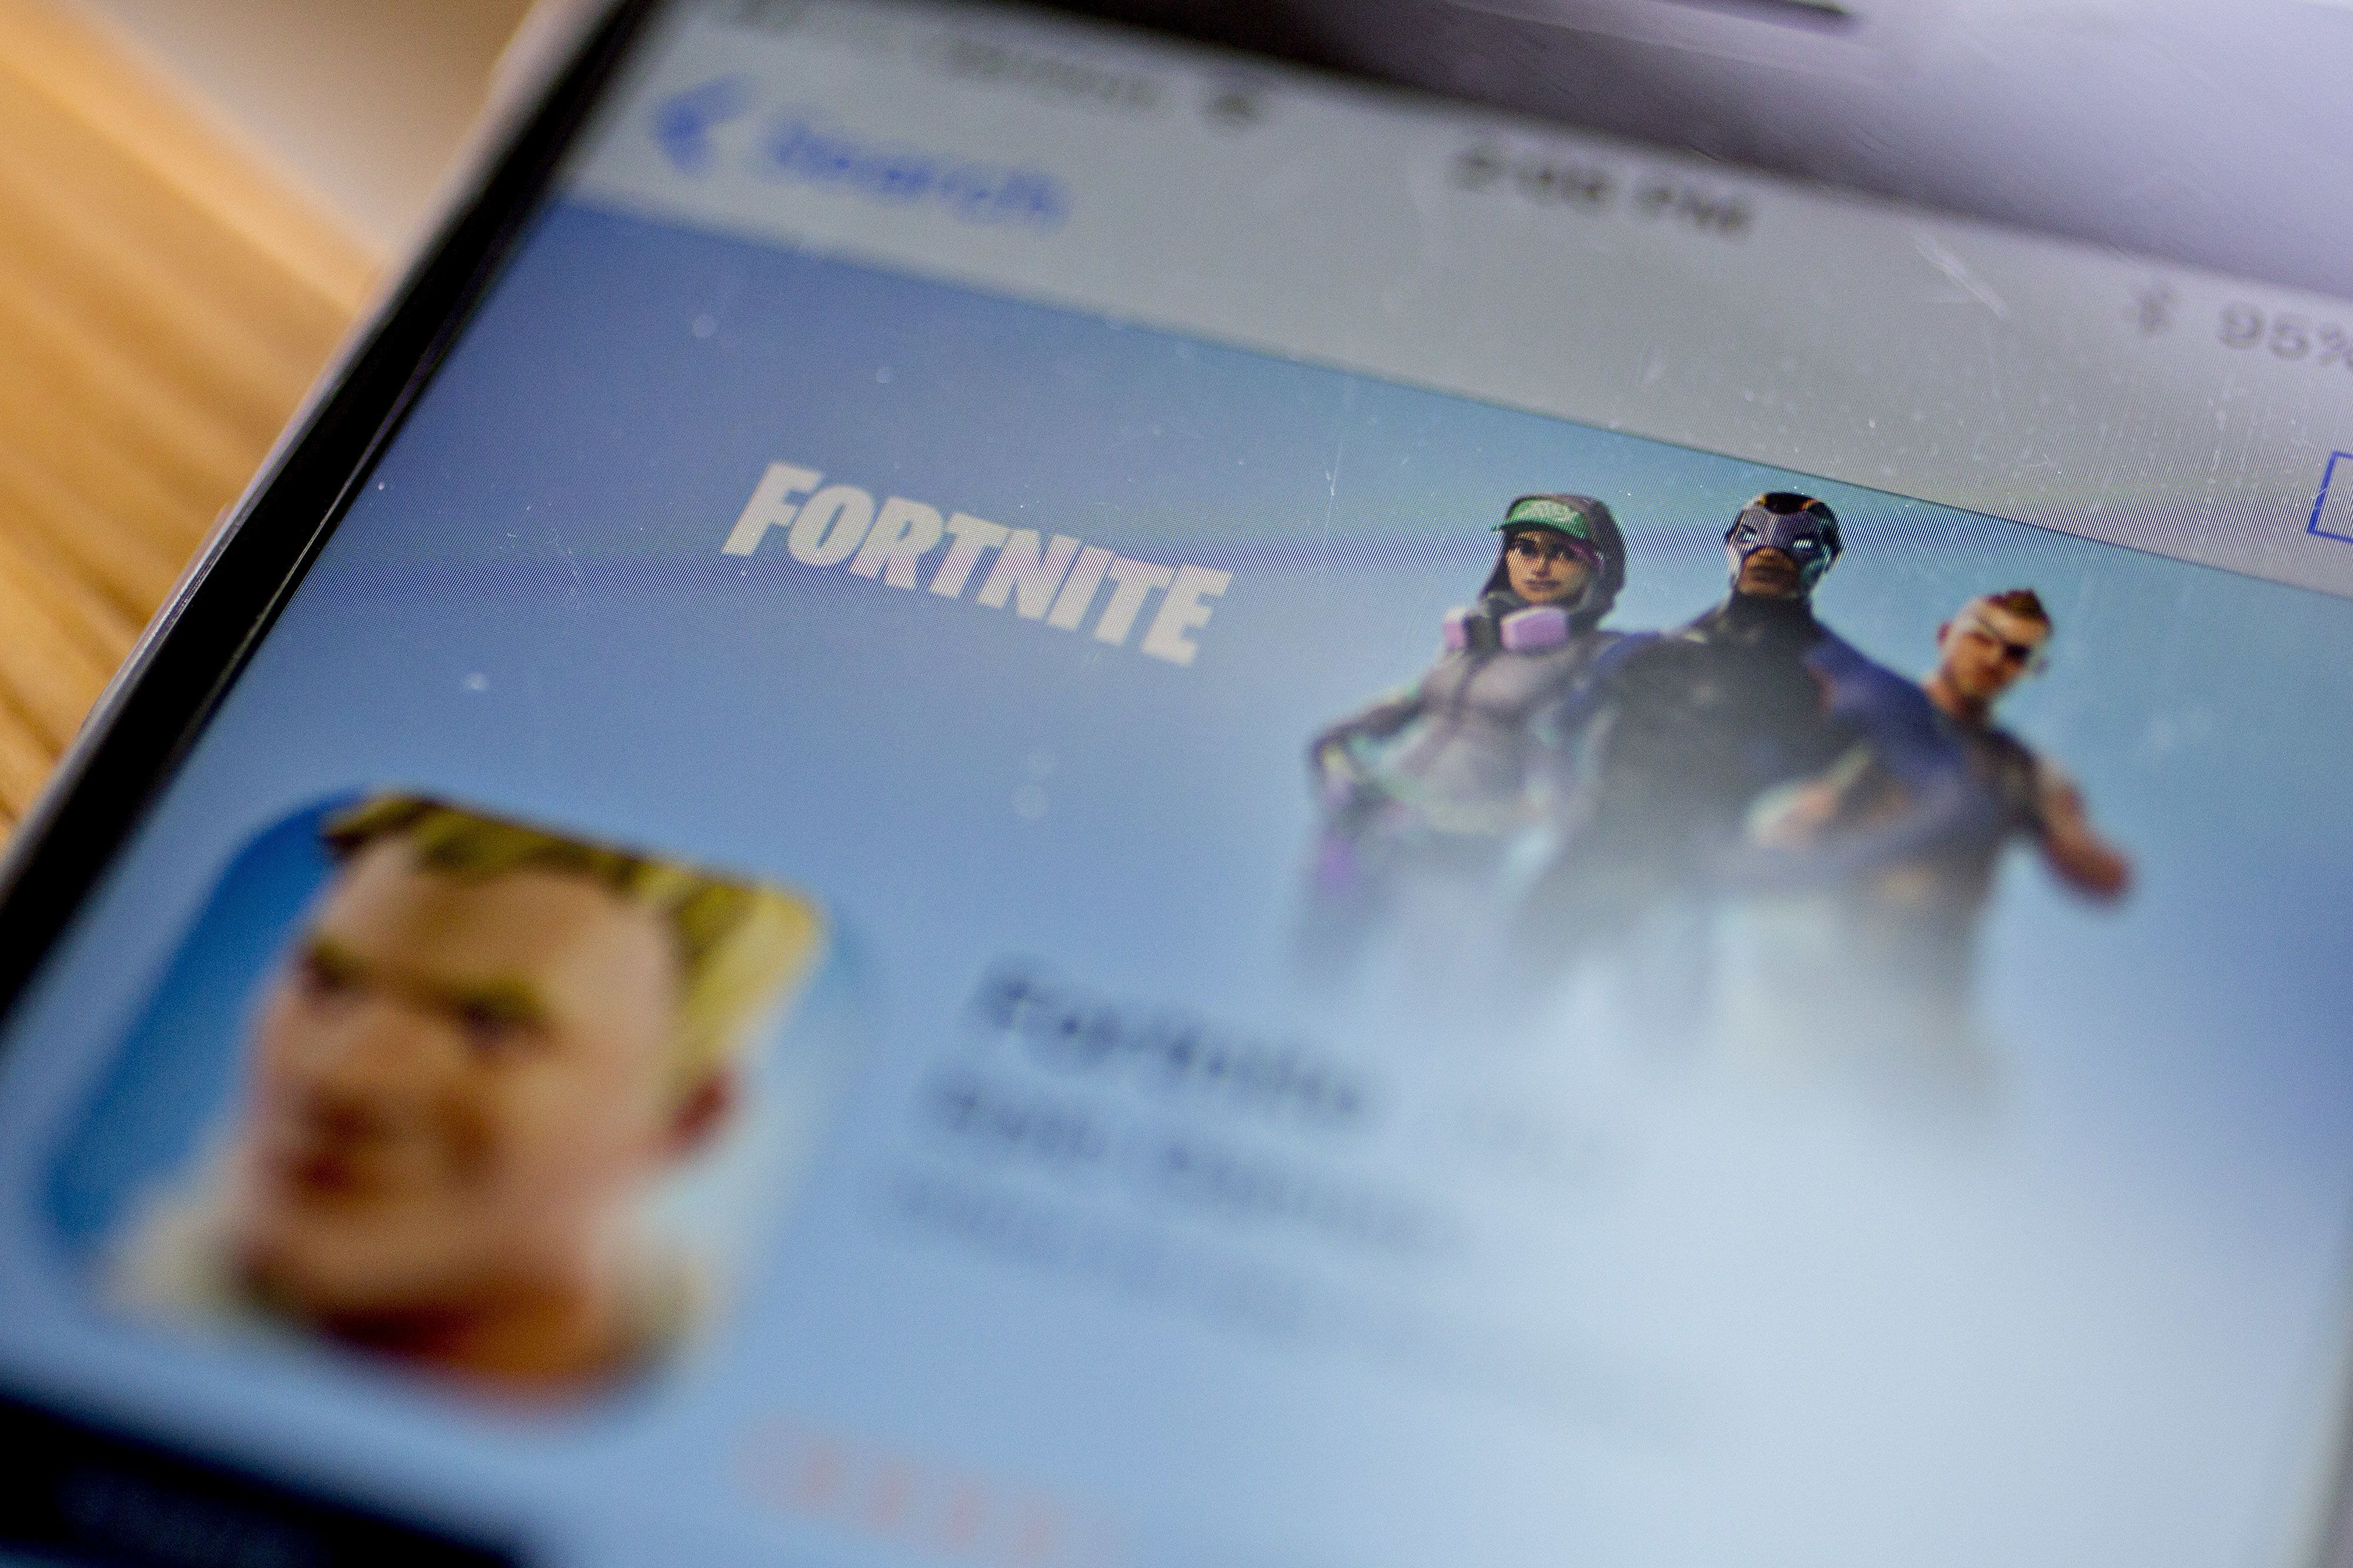 The massively popular video game Fortnite might be connected to a new baby name trend.